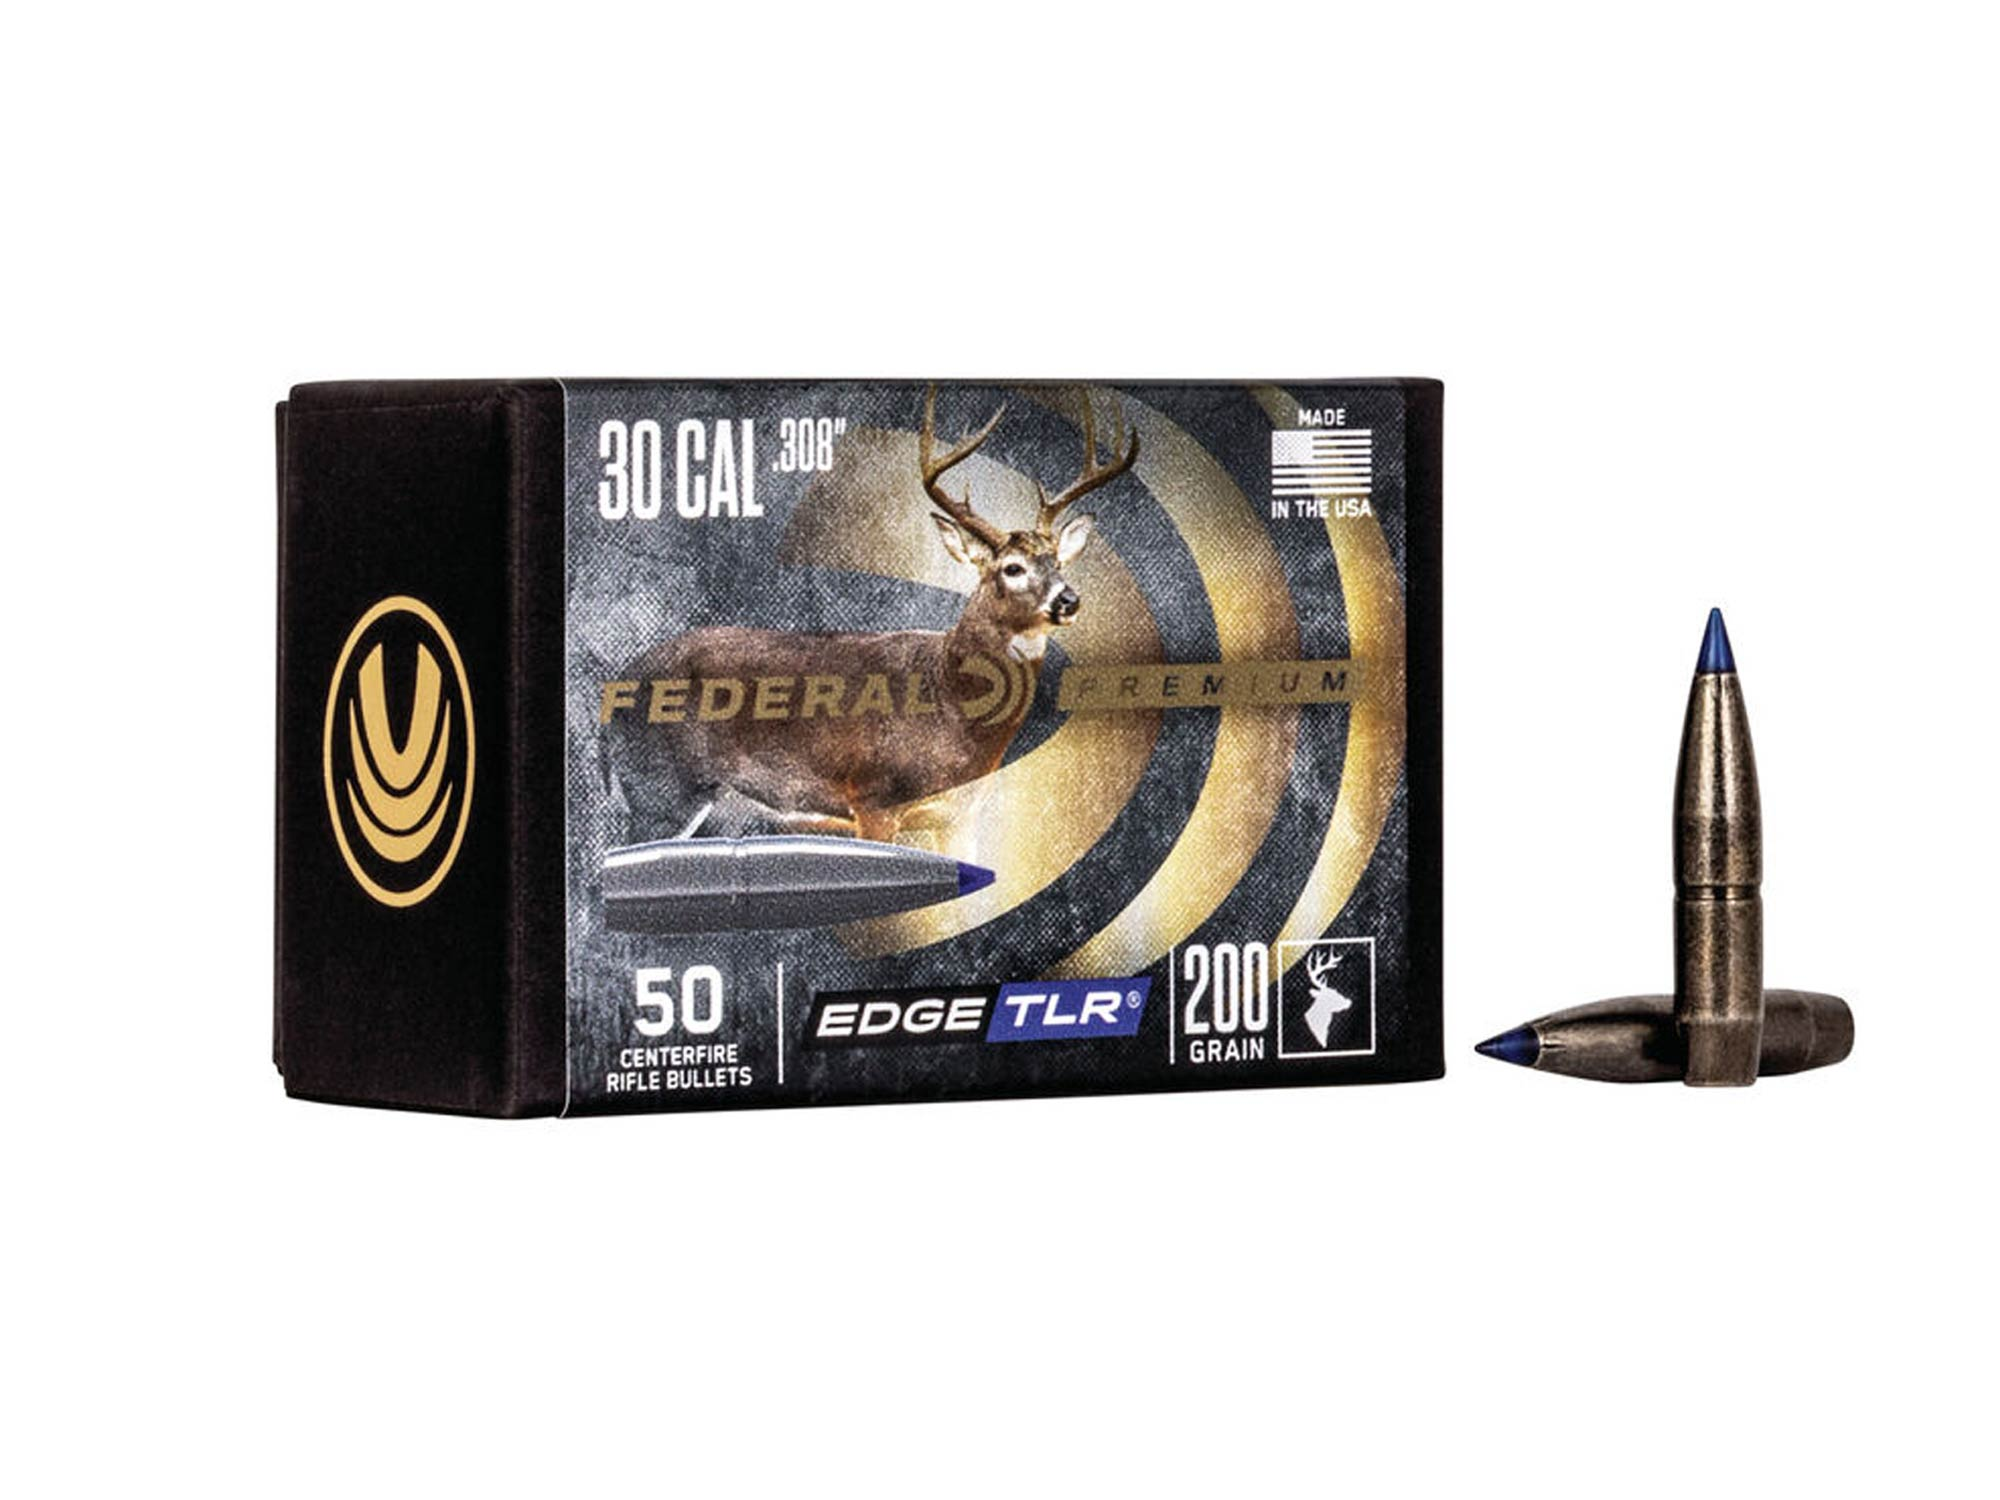 The Federal Edge TLR Bullet.